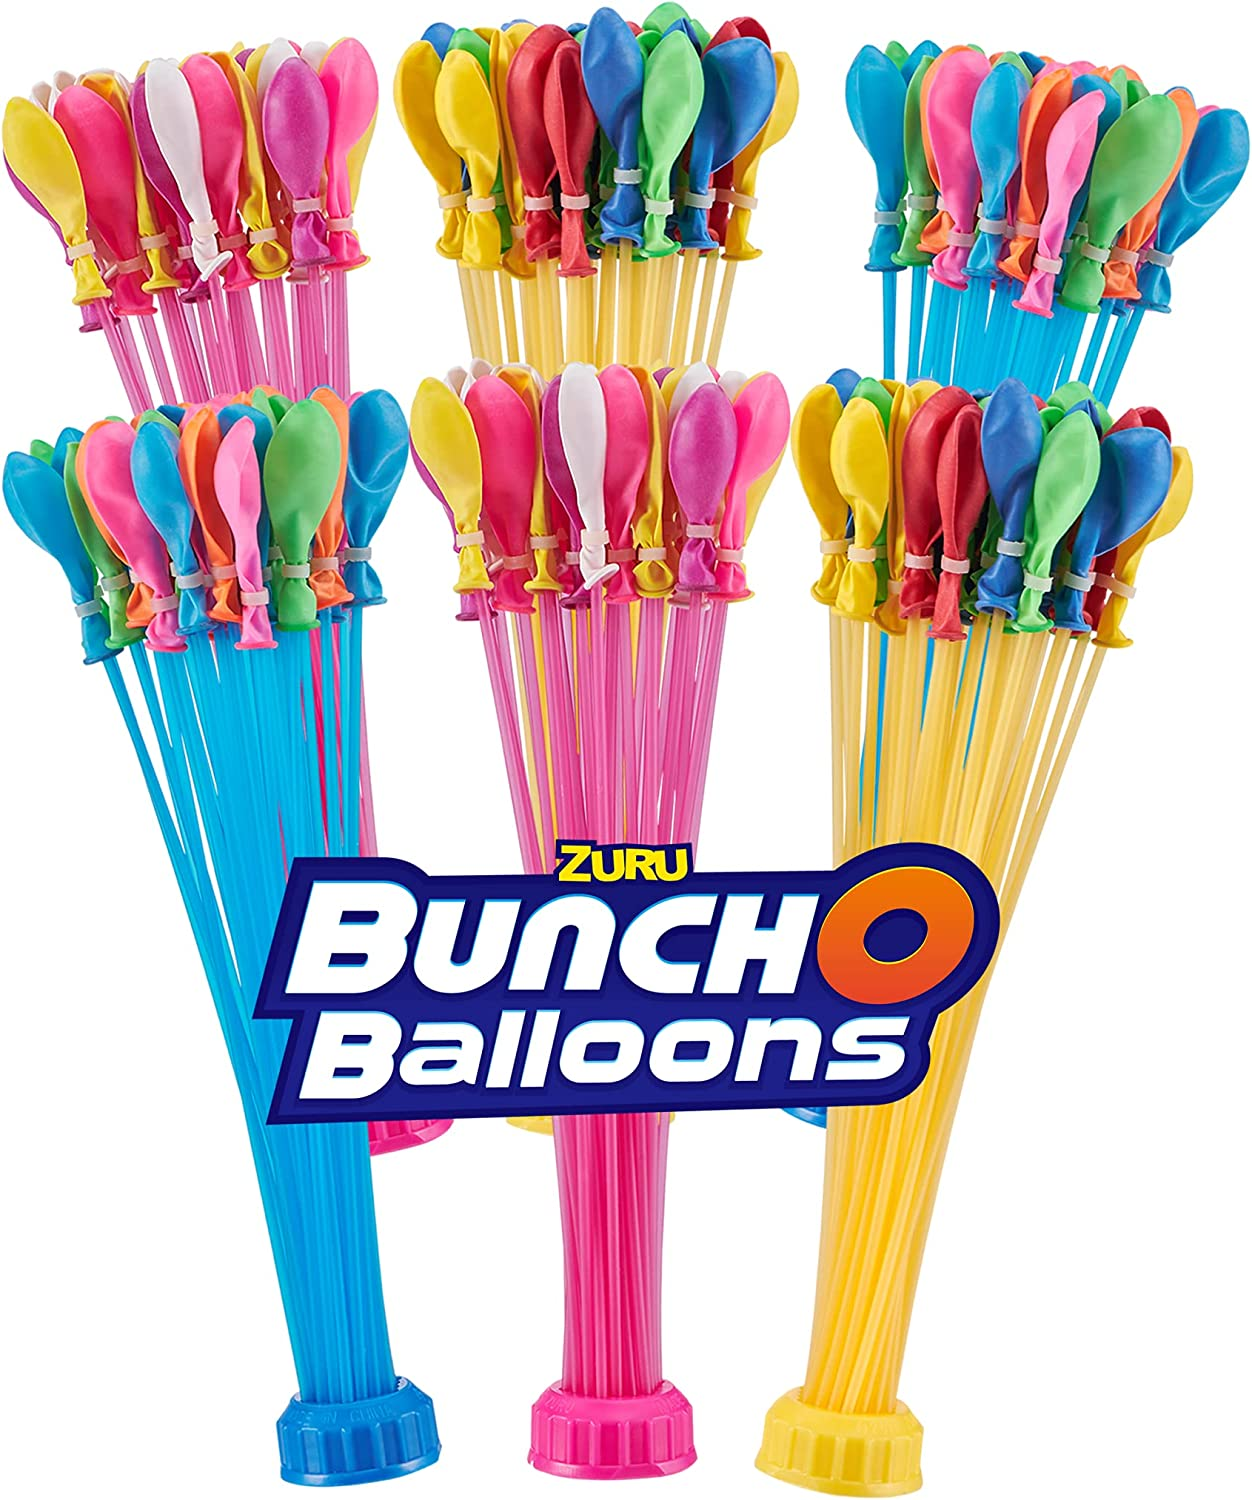 Buy Bunch O Balloons Rapid Sealing Crazy Color Water Balloons 6 Pack Online In Indonesia B08cvrcfx3